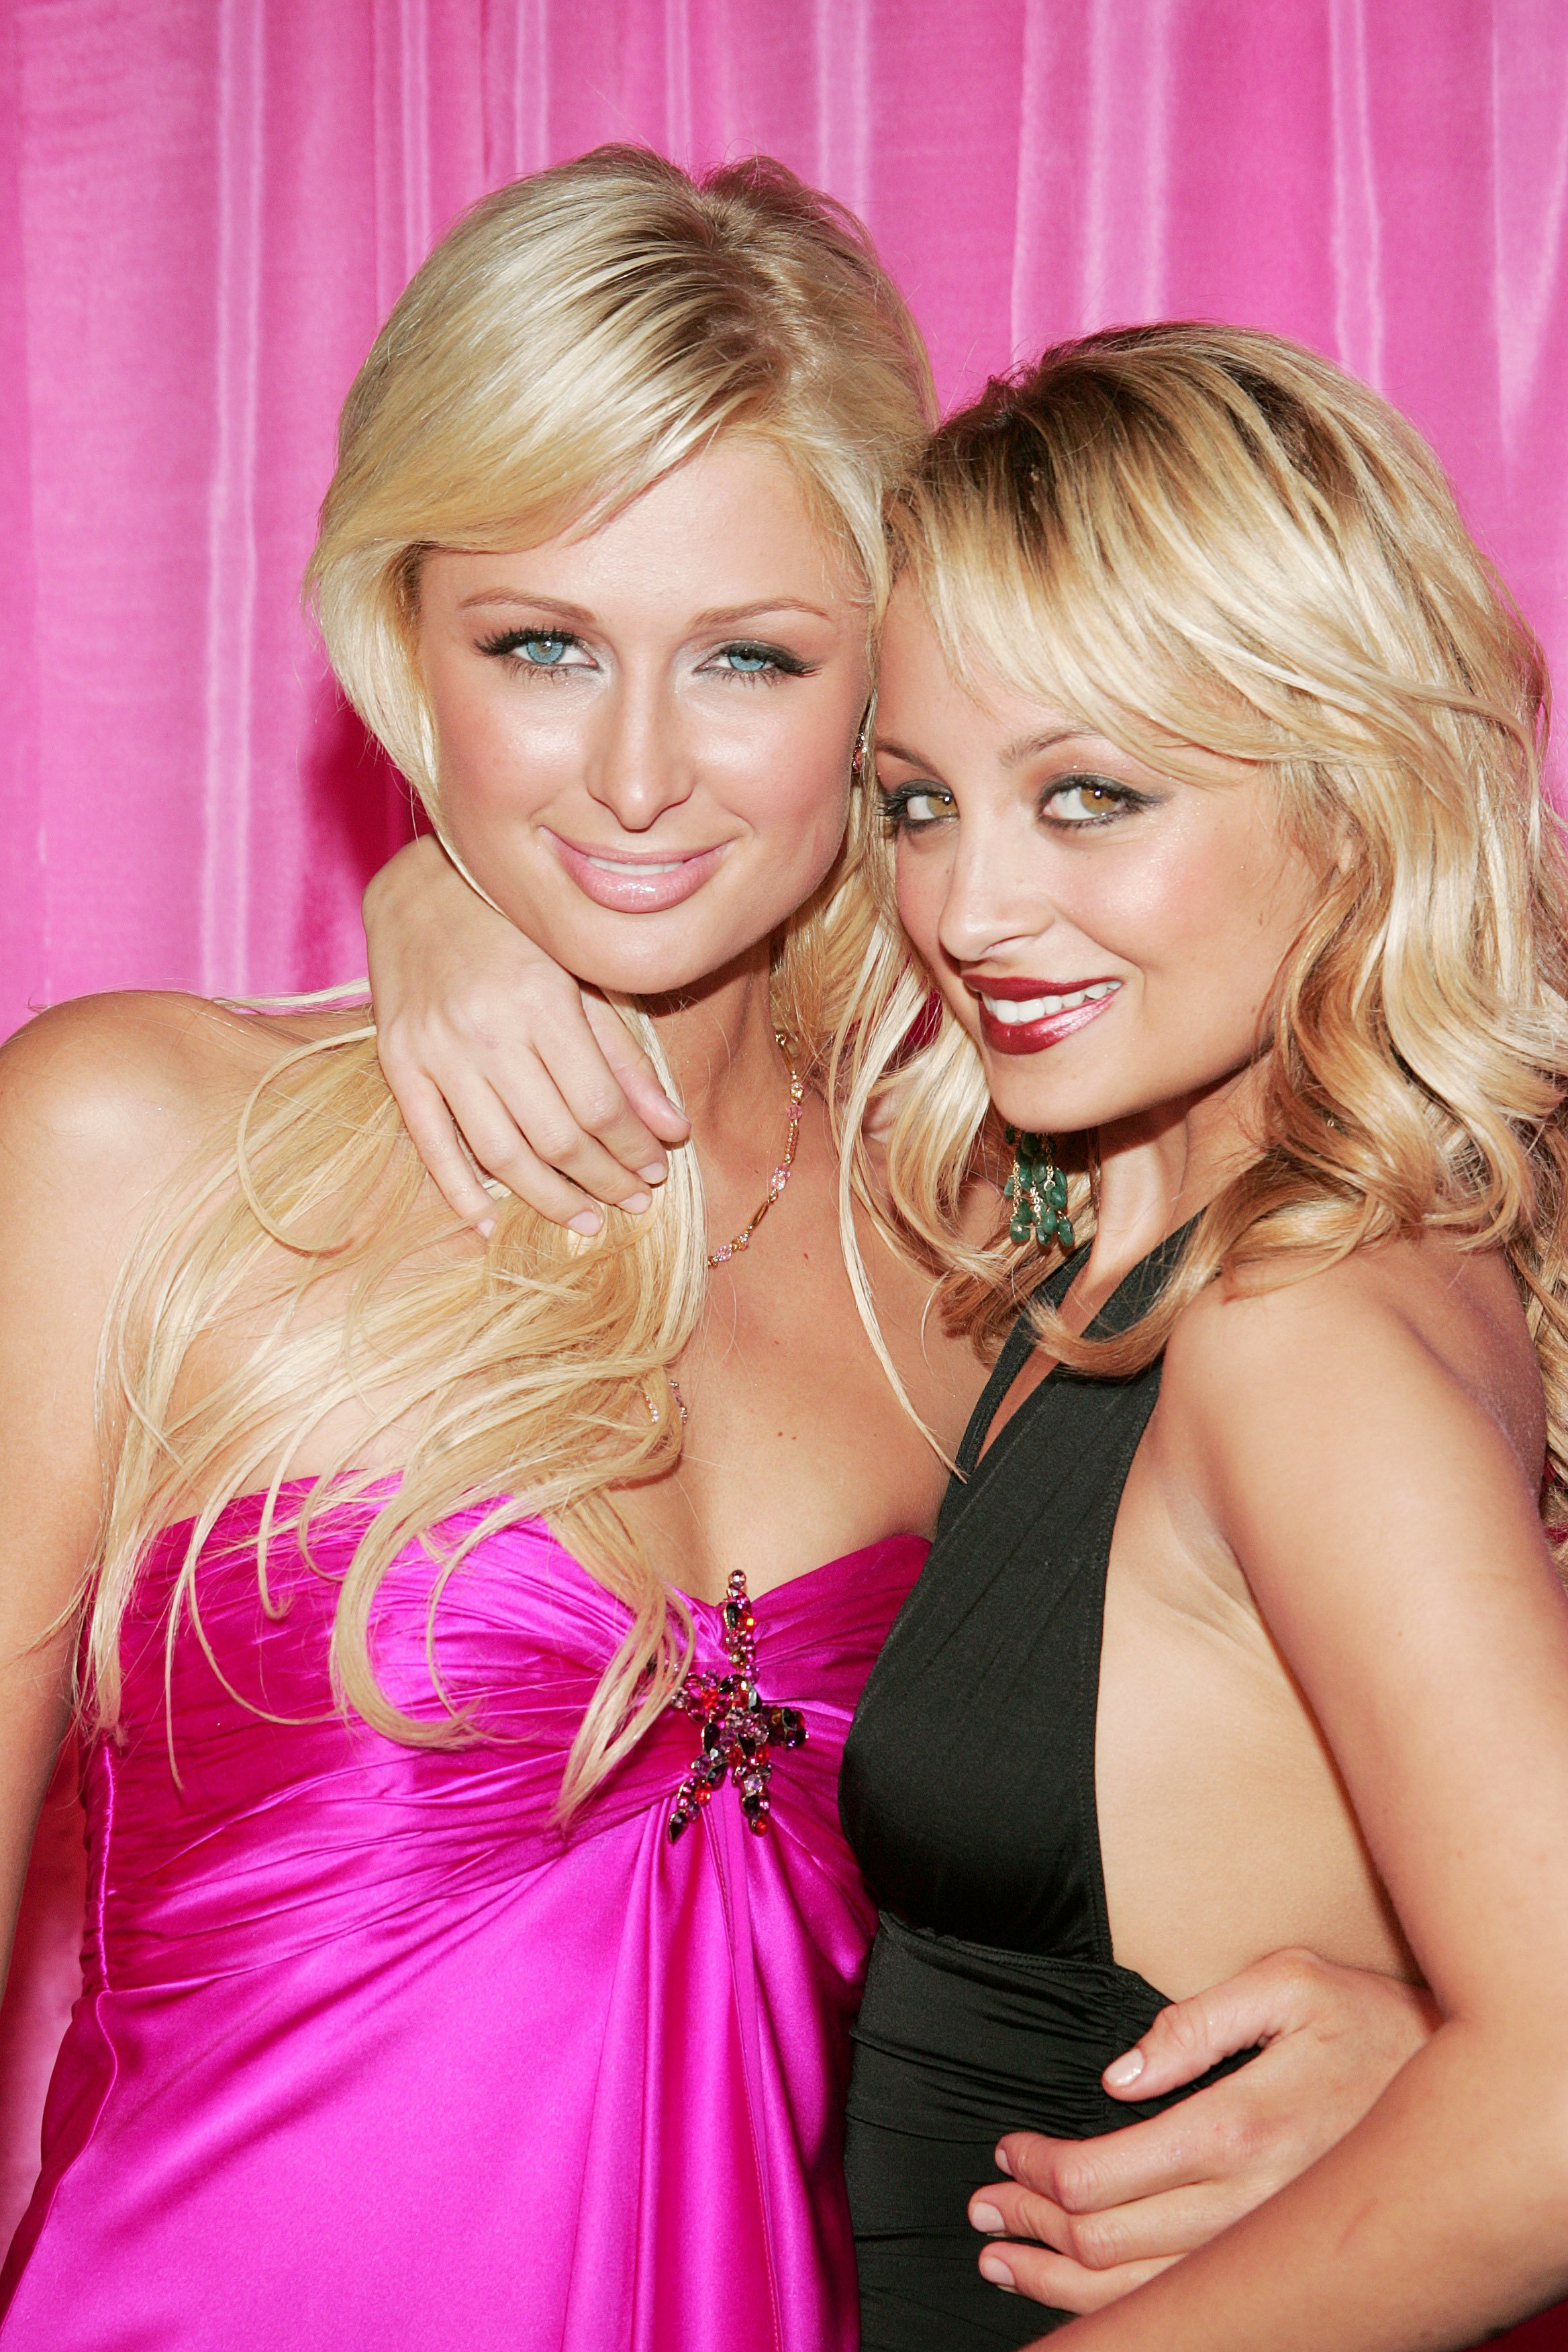 """Paris Hilton and Nicole Richie attend the """"Simple Life 3"""" wrap party in New York City on Nov. 21, 2004."""